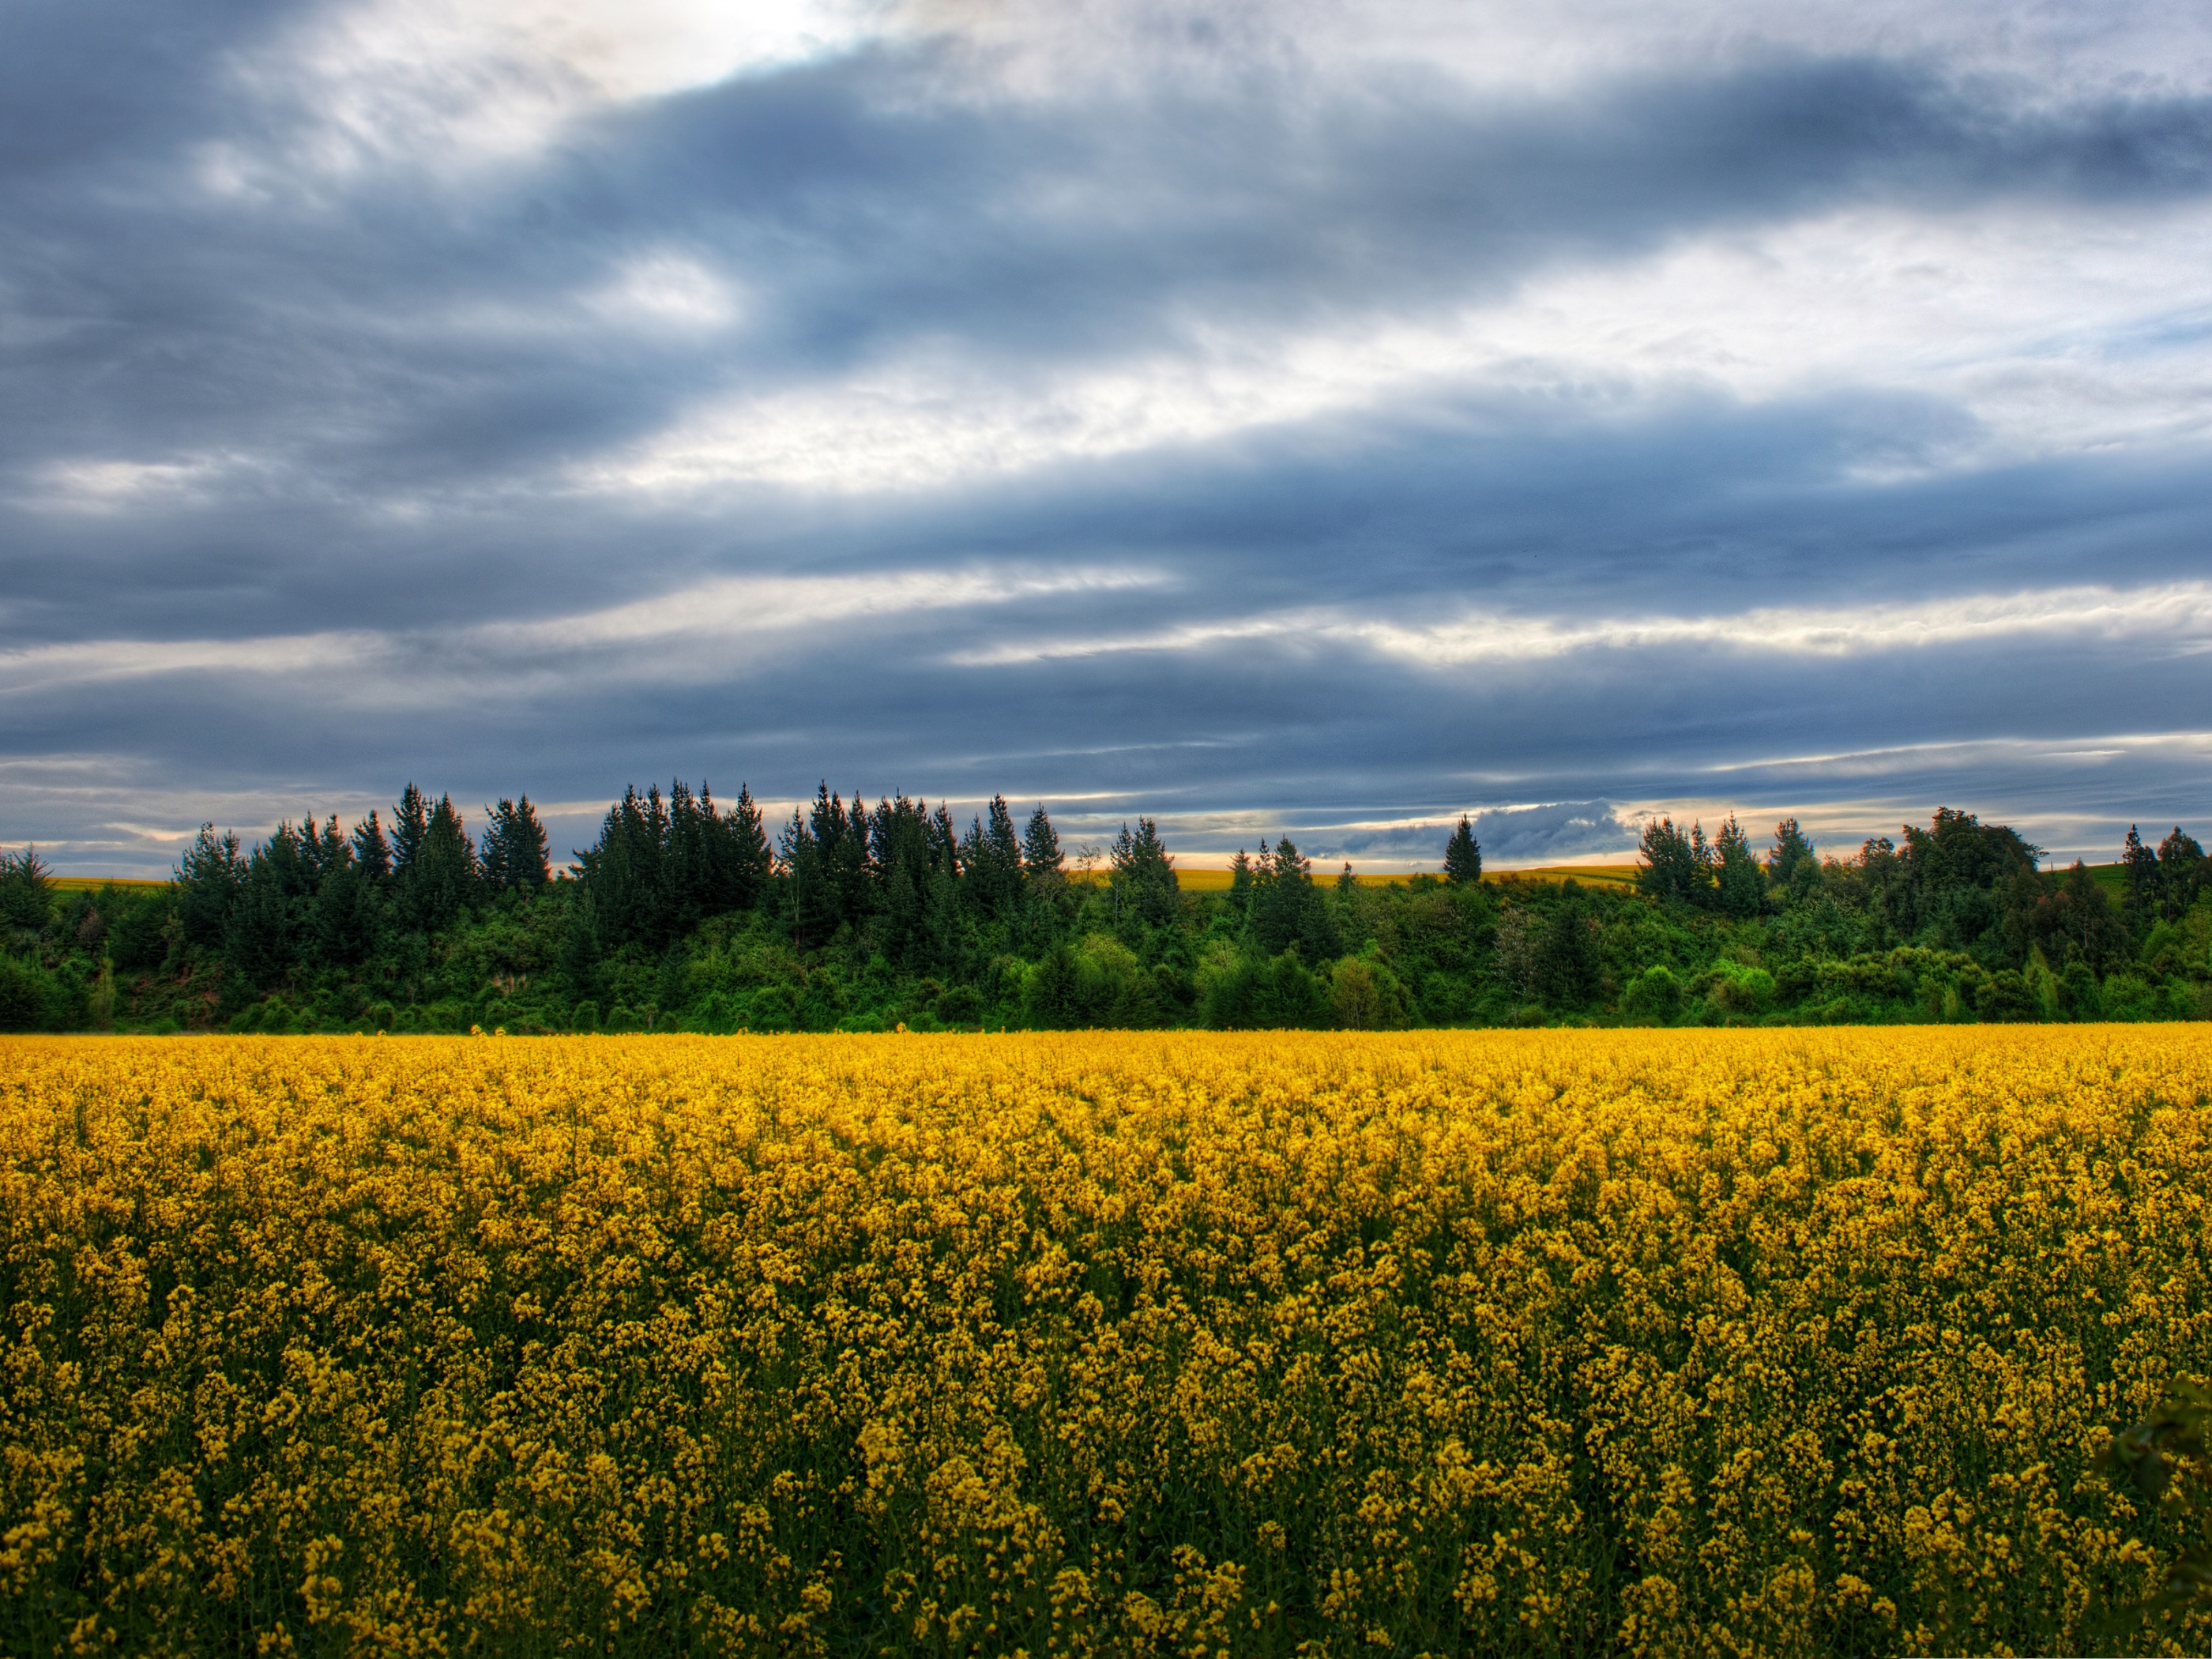 click to free download the wallpaper--Flowers Field Image, Yellow Flowers in Bloom, Under the Blue Sky 2800X2100 free wallpaper download